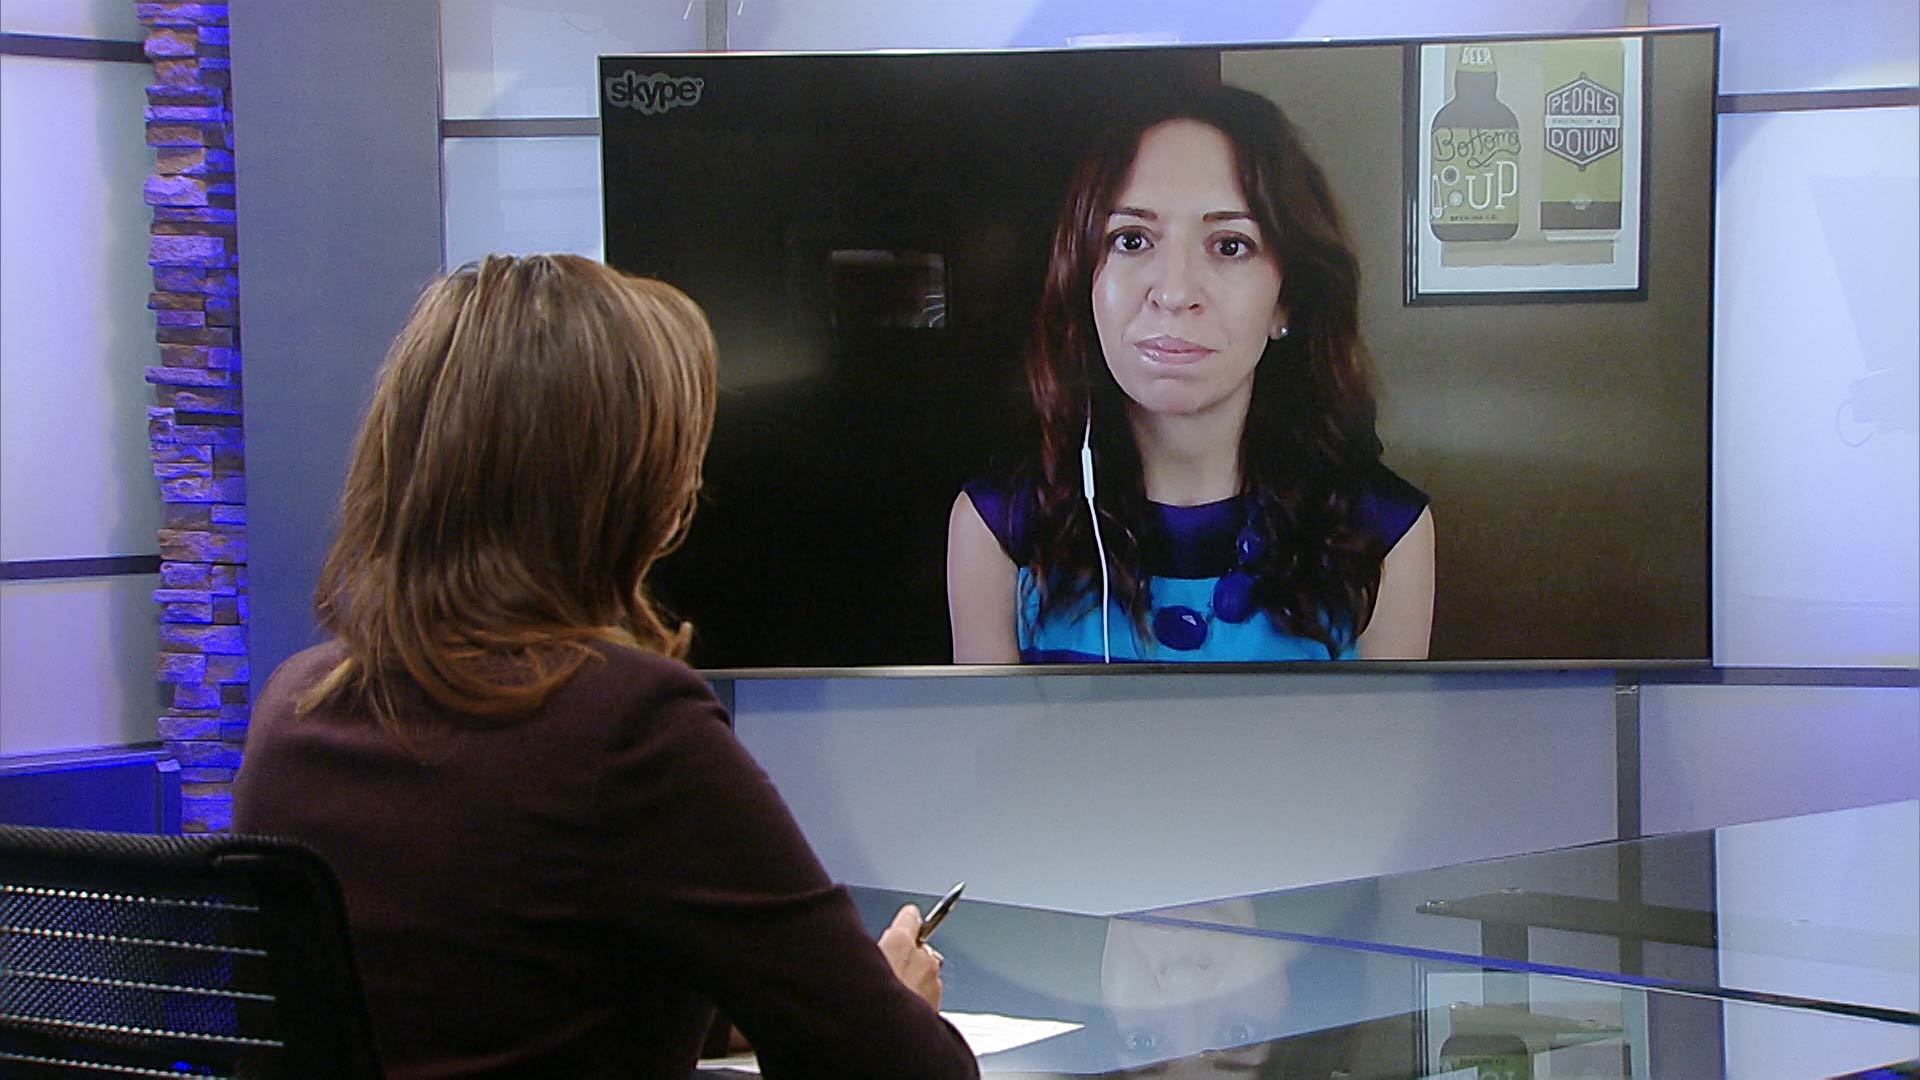 Lorraine Rivera speaks to Javelina CEO Catherine Alonzo via Skype about the credibility of election polls.